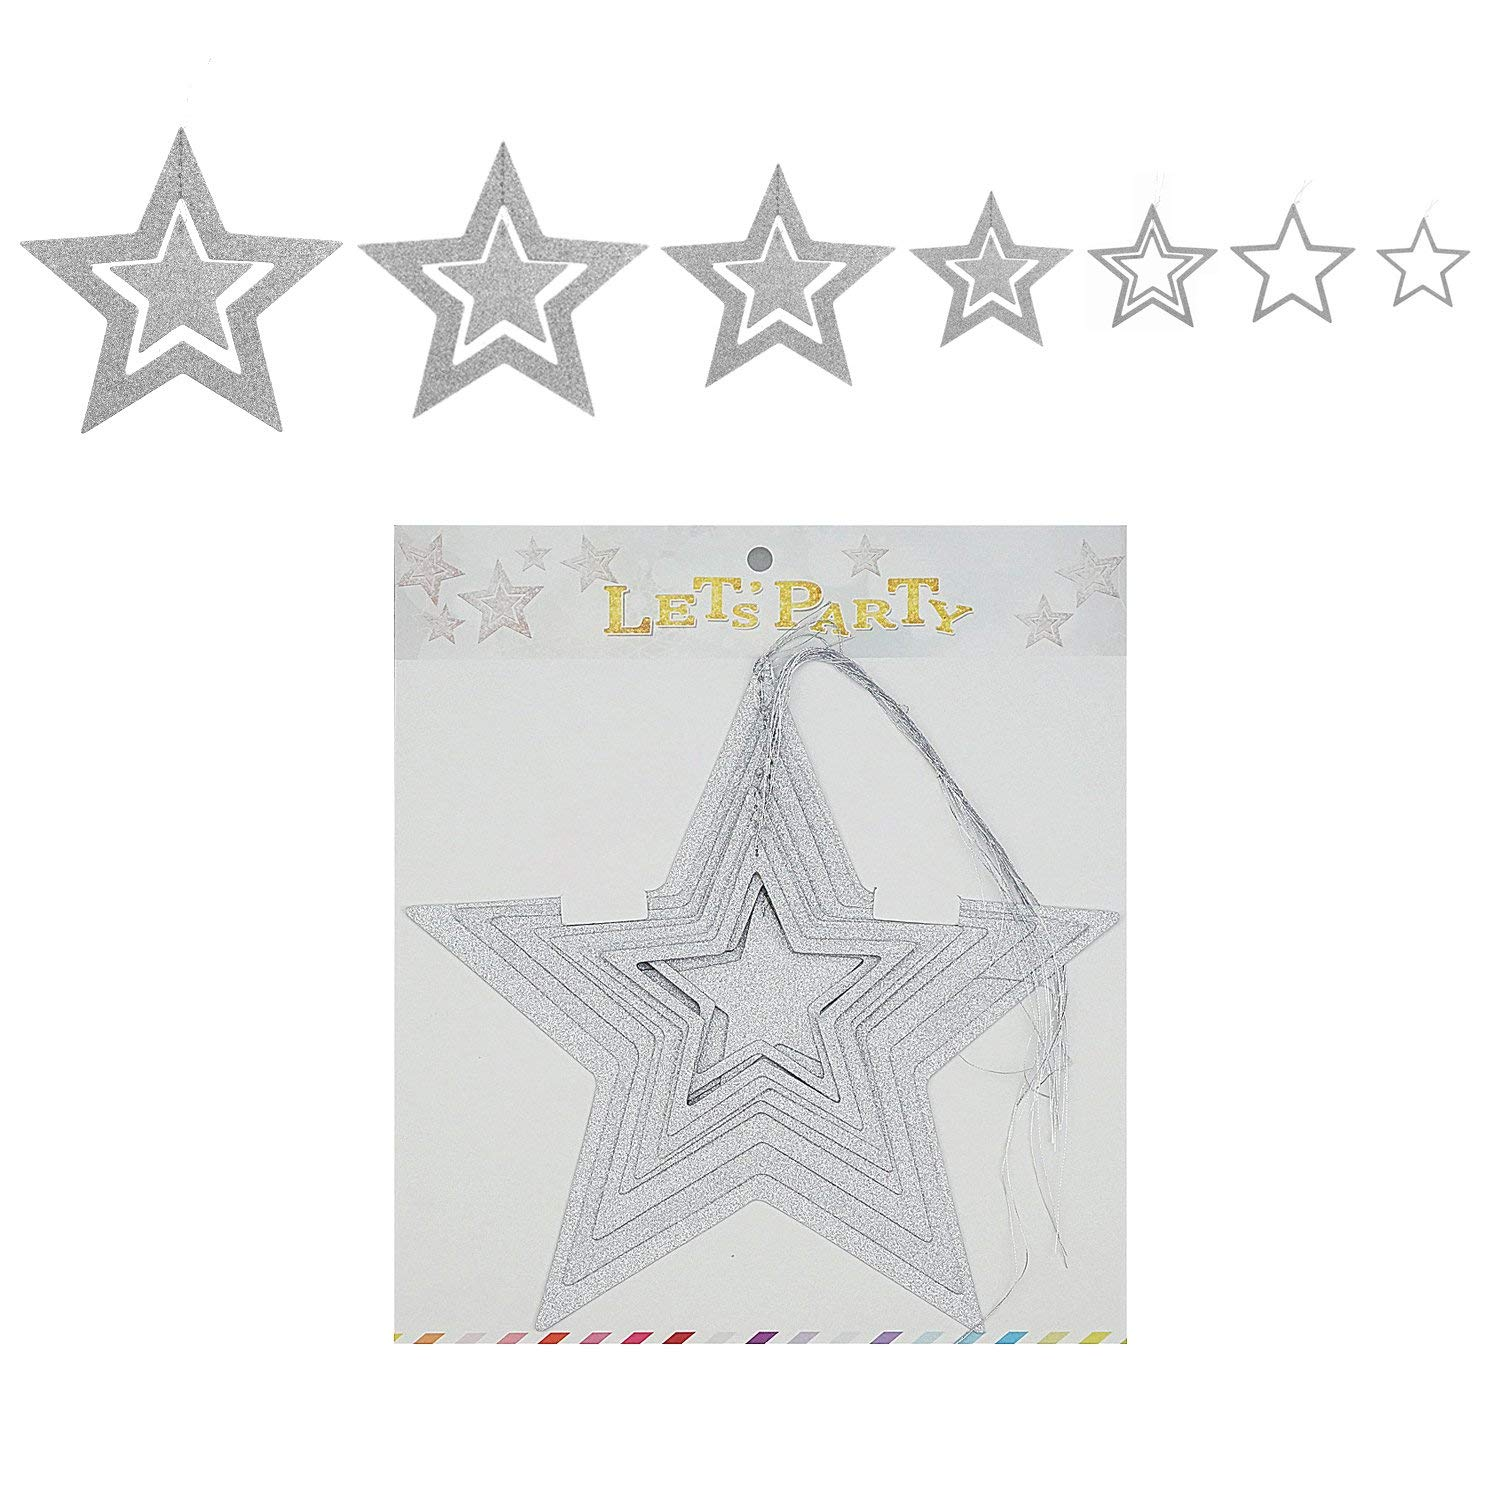 Cheap Star Themed Party Decorations Find Star Themed Party